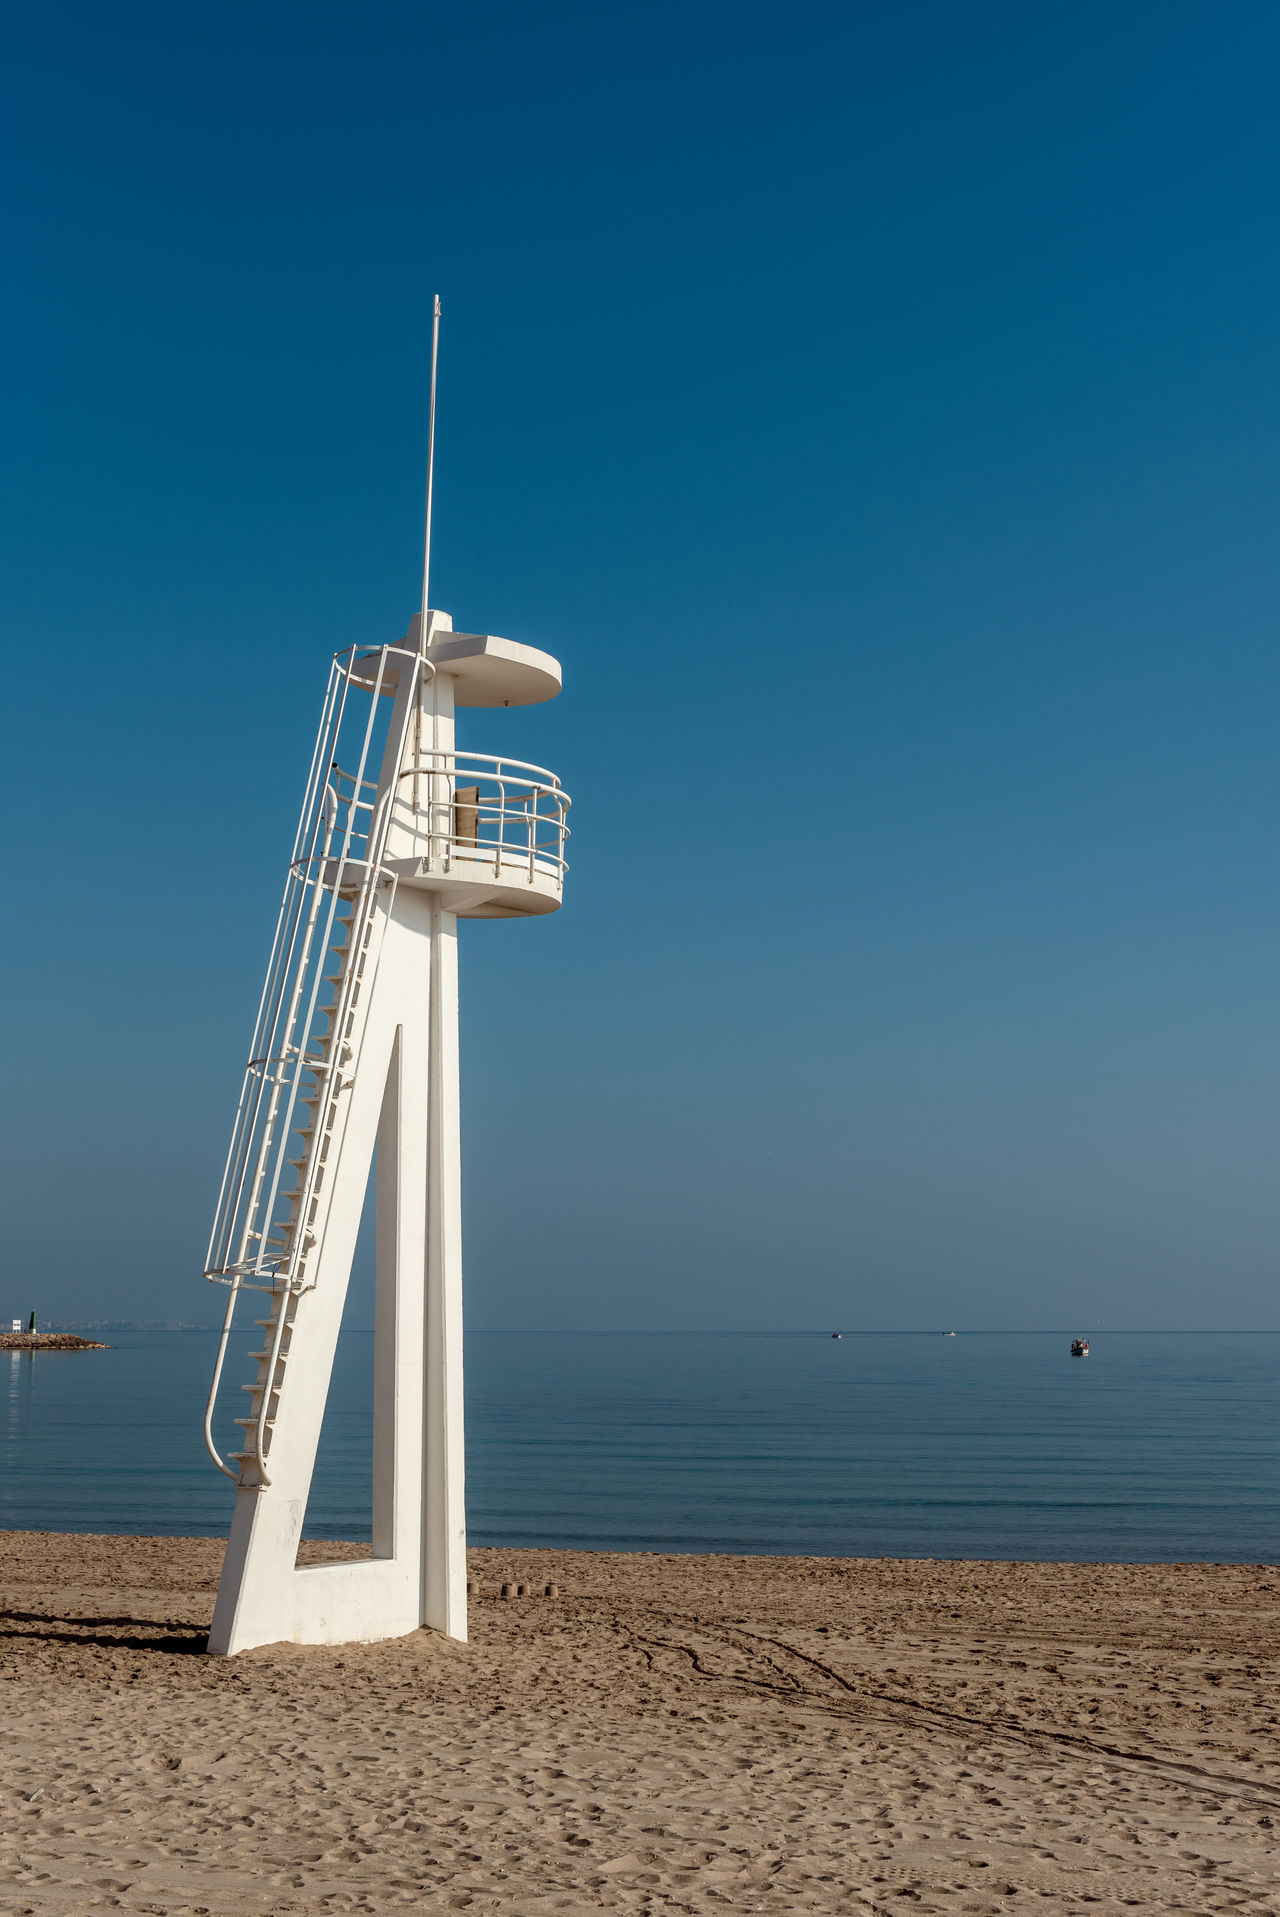 Lifeguard tower on the beach. El Campello, Alicante. Spain Alicante, Spain Beach Coast Coastline Costa Blanca El Campello Holiday Lifeguard  Lifeguard Tower Mediterranean Sea Nature Nobody Observation Outdoors Protection Resort Safeguard Safety Sand Seaside Service Shore Shoreline South Sunny Day